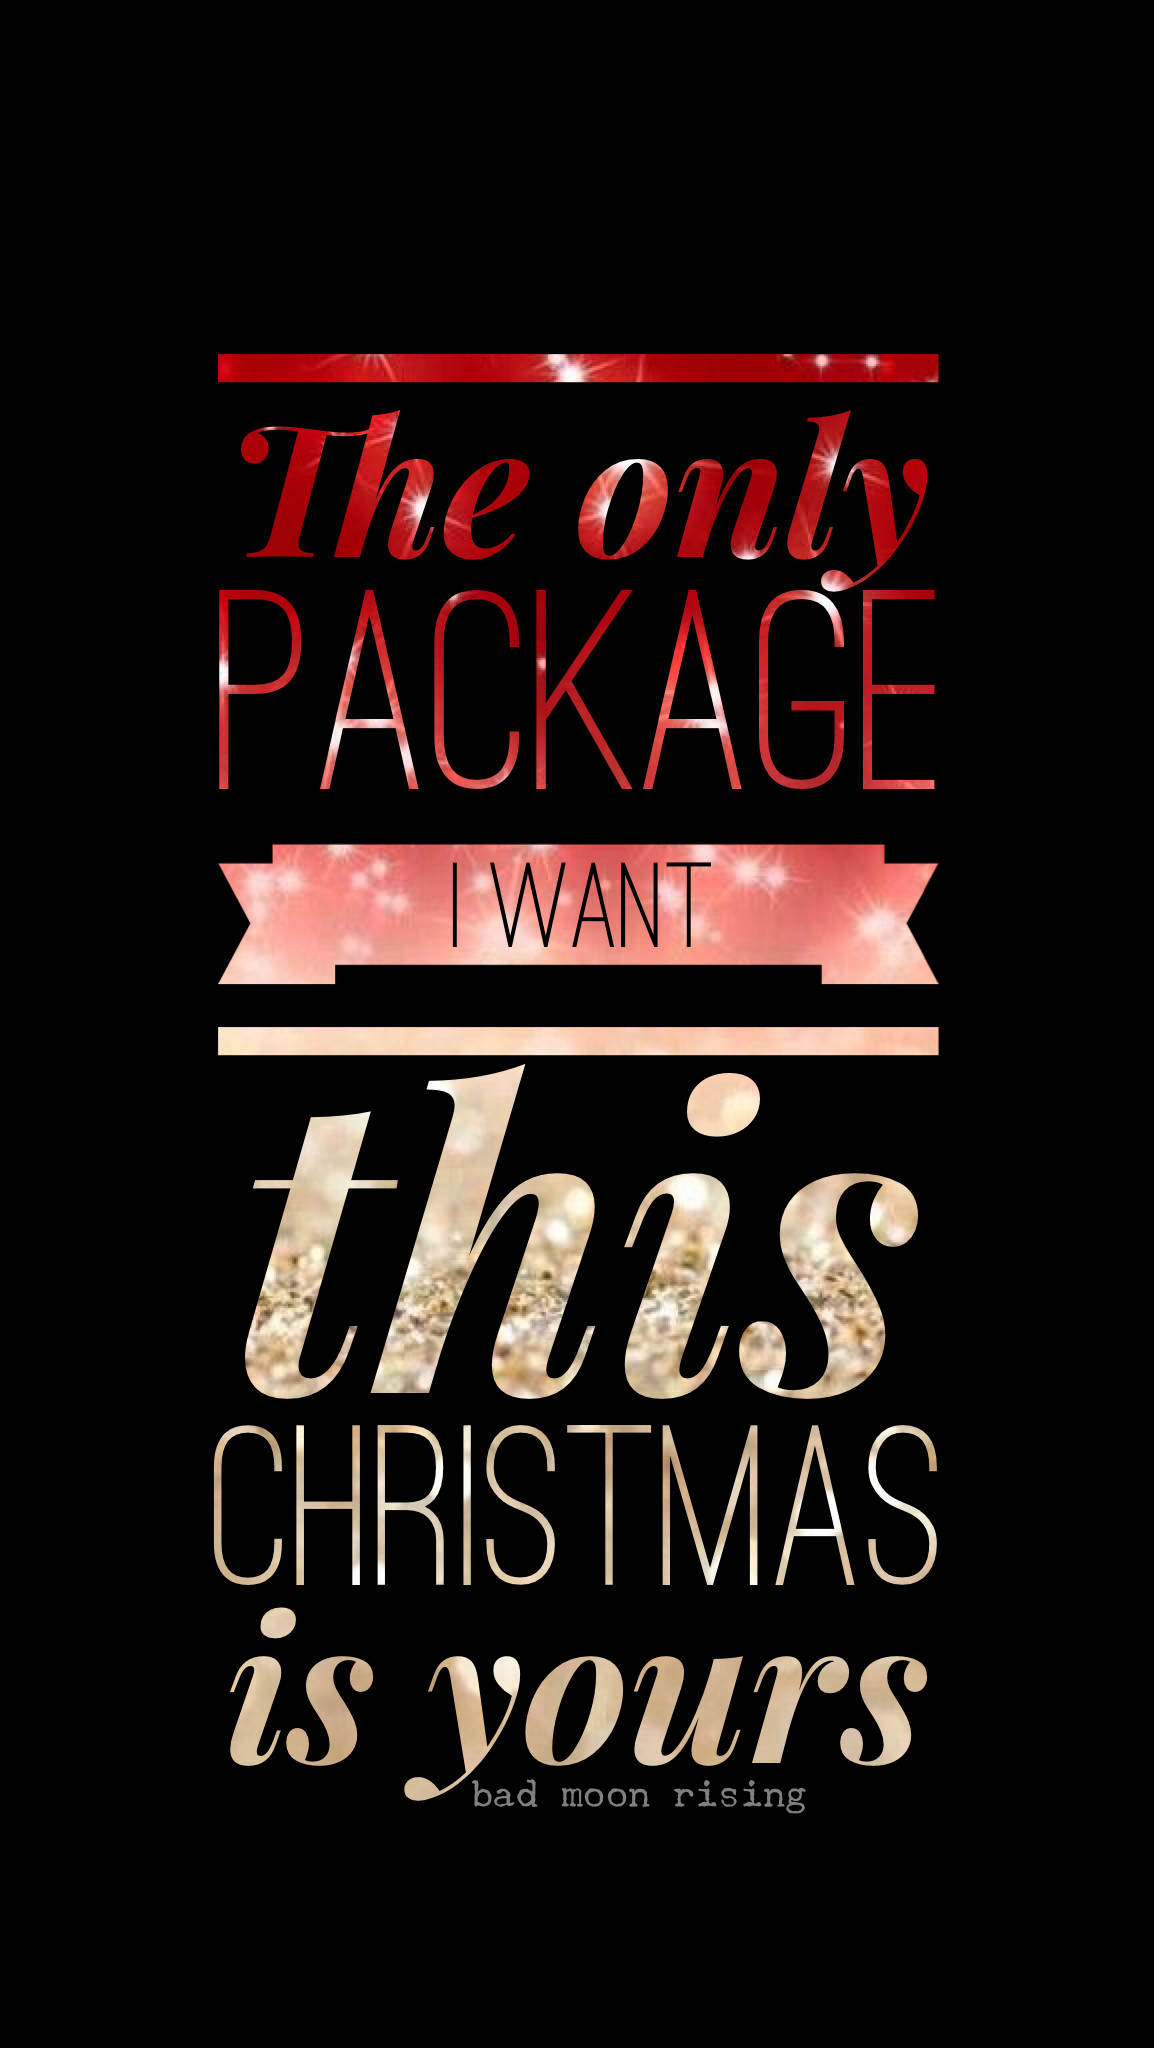 The only package I want this Christmas is yours. Naughty funny Christmas  glitter iPhone wallpaper